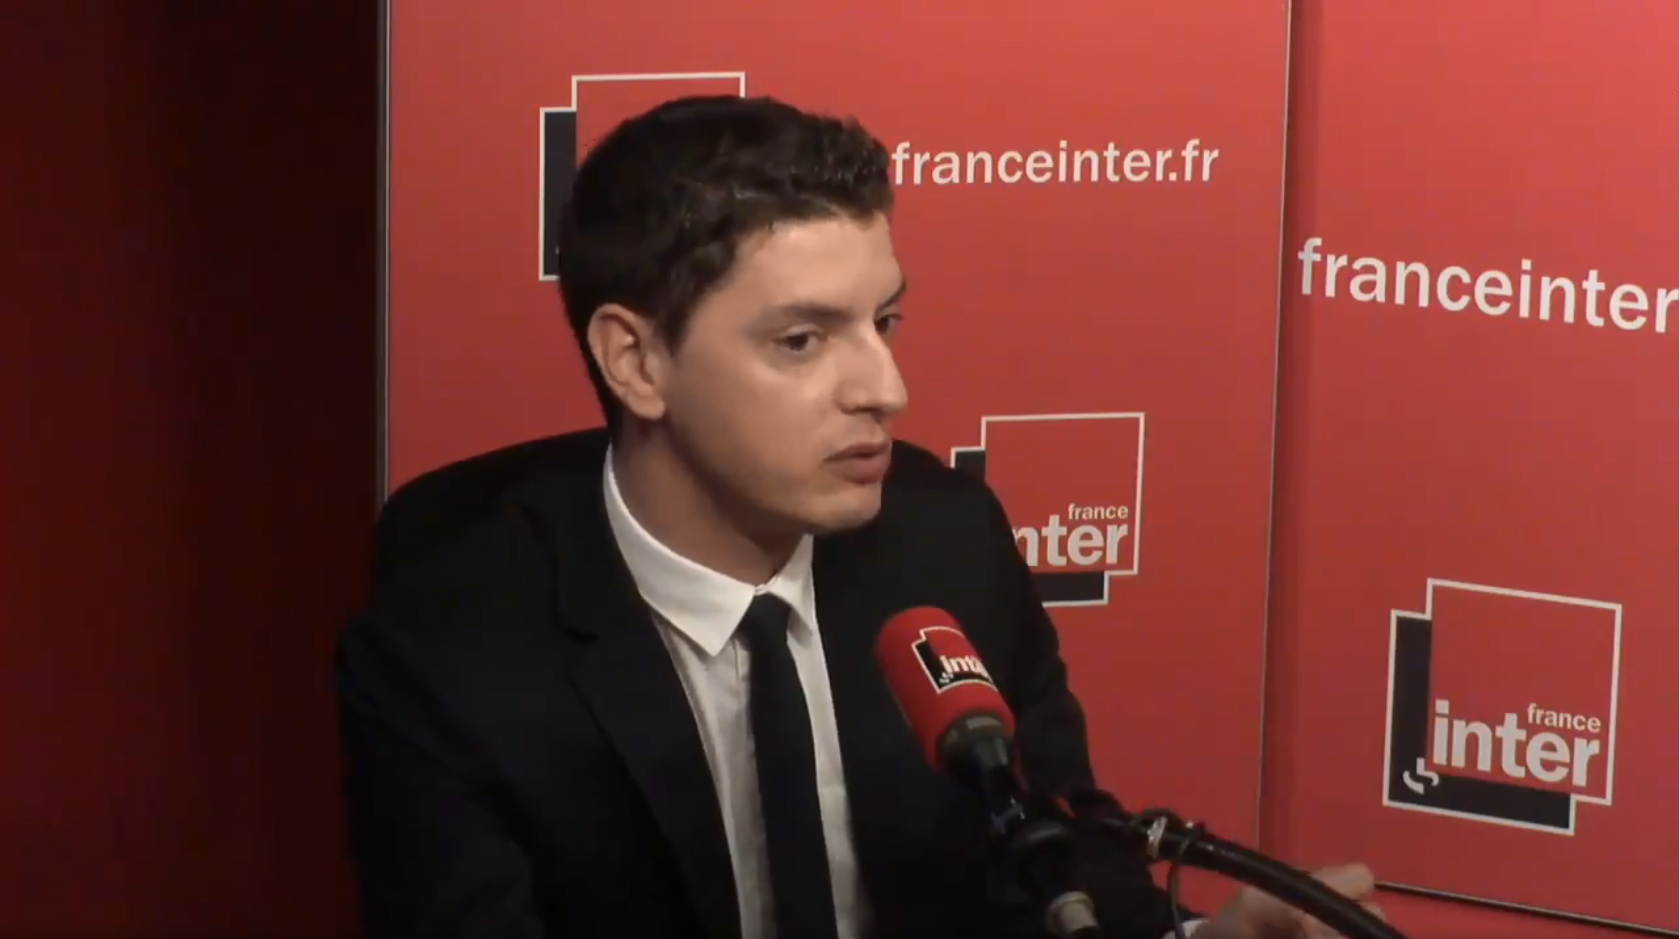 Capture d'écran de l'interview de Mickaël Nogal sur France Inter